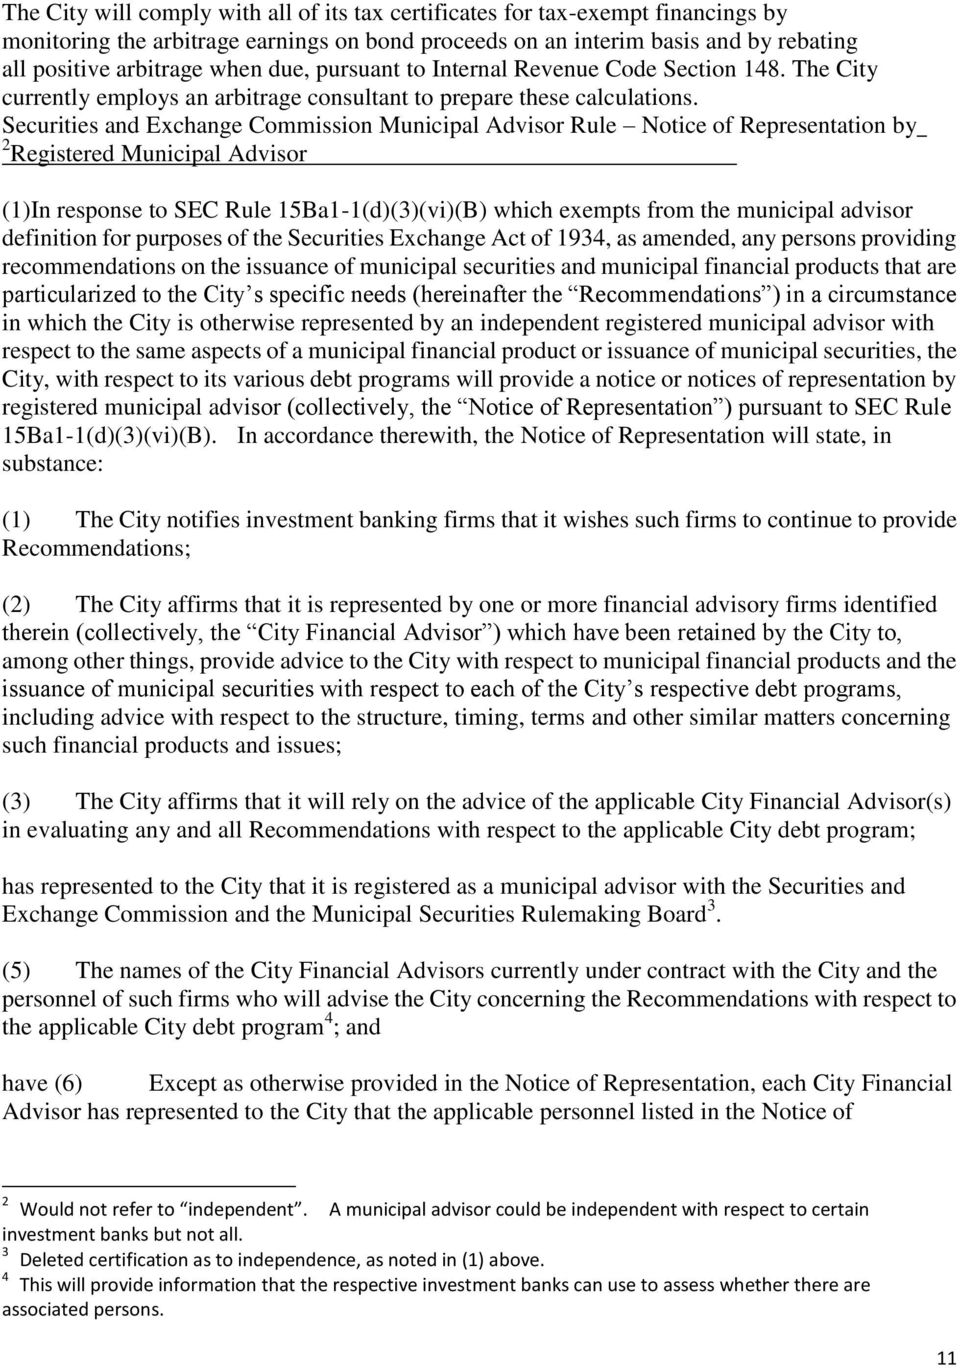 Securities and Exchange Commission Municipal Advisor Rule Notice of Representation by 2 Registered Municipal Advisor (1)In response to SEC Rule 15Ba1-1(d)(3)(vi)(B) which exempts from the municipal